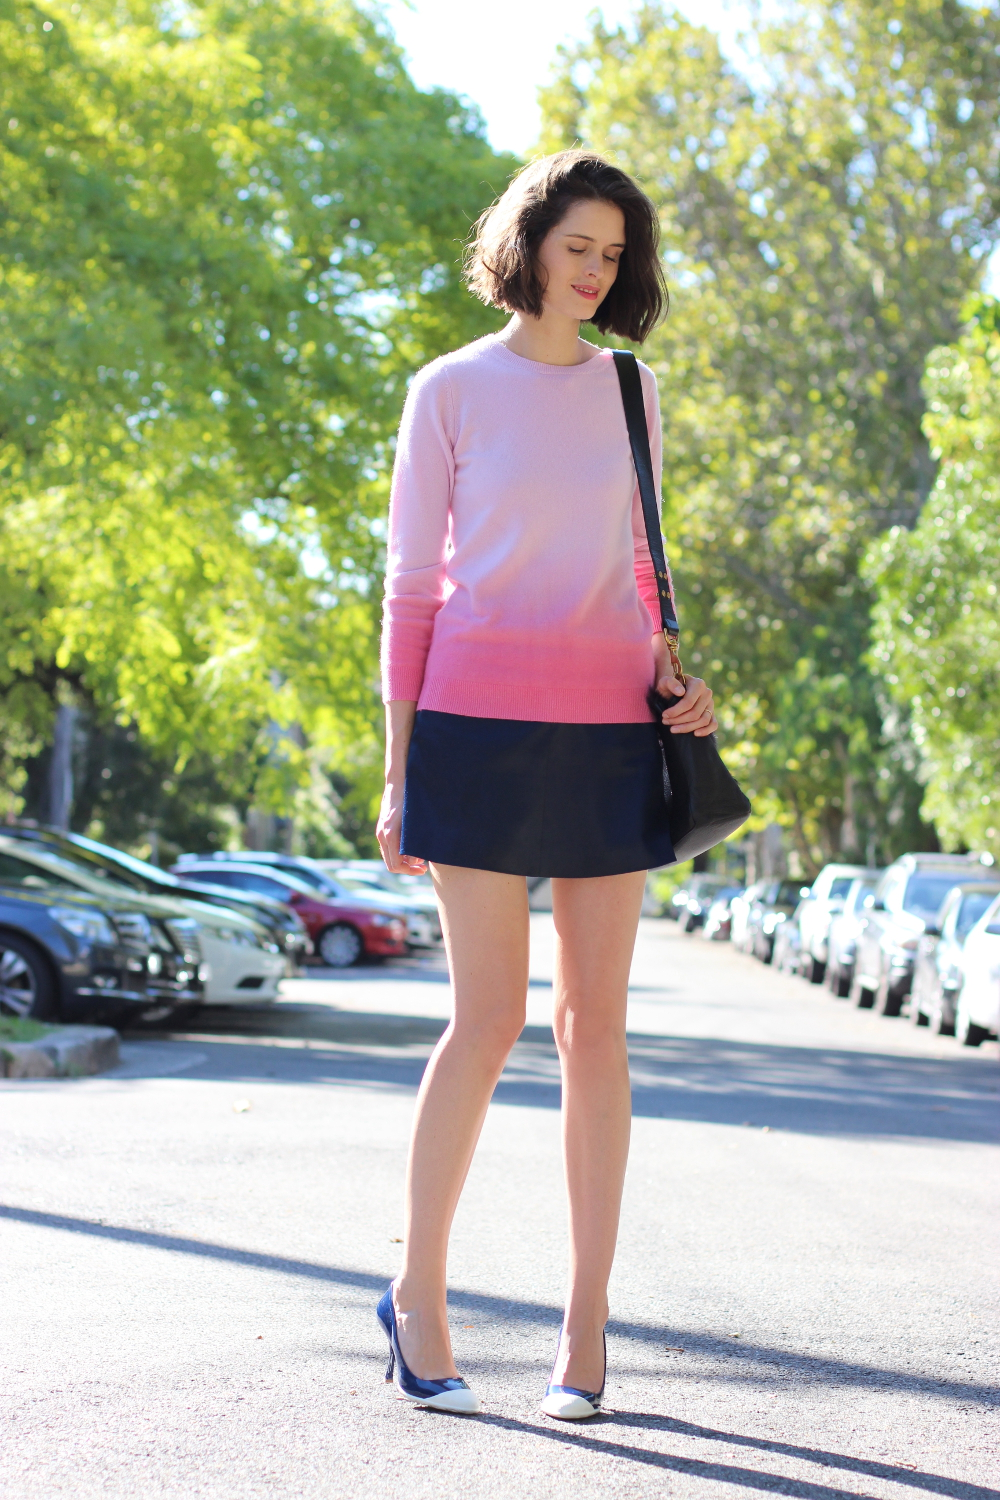 BYCHILL BLOG Boden clothing pink ombre cashmere jumper, antipodium london navy mini skirt and miu miu blue heels